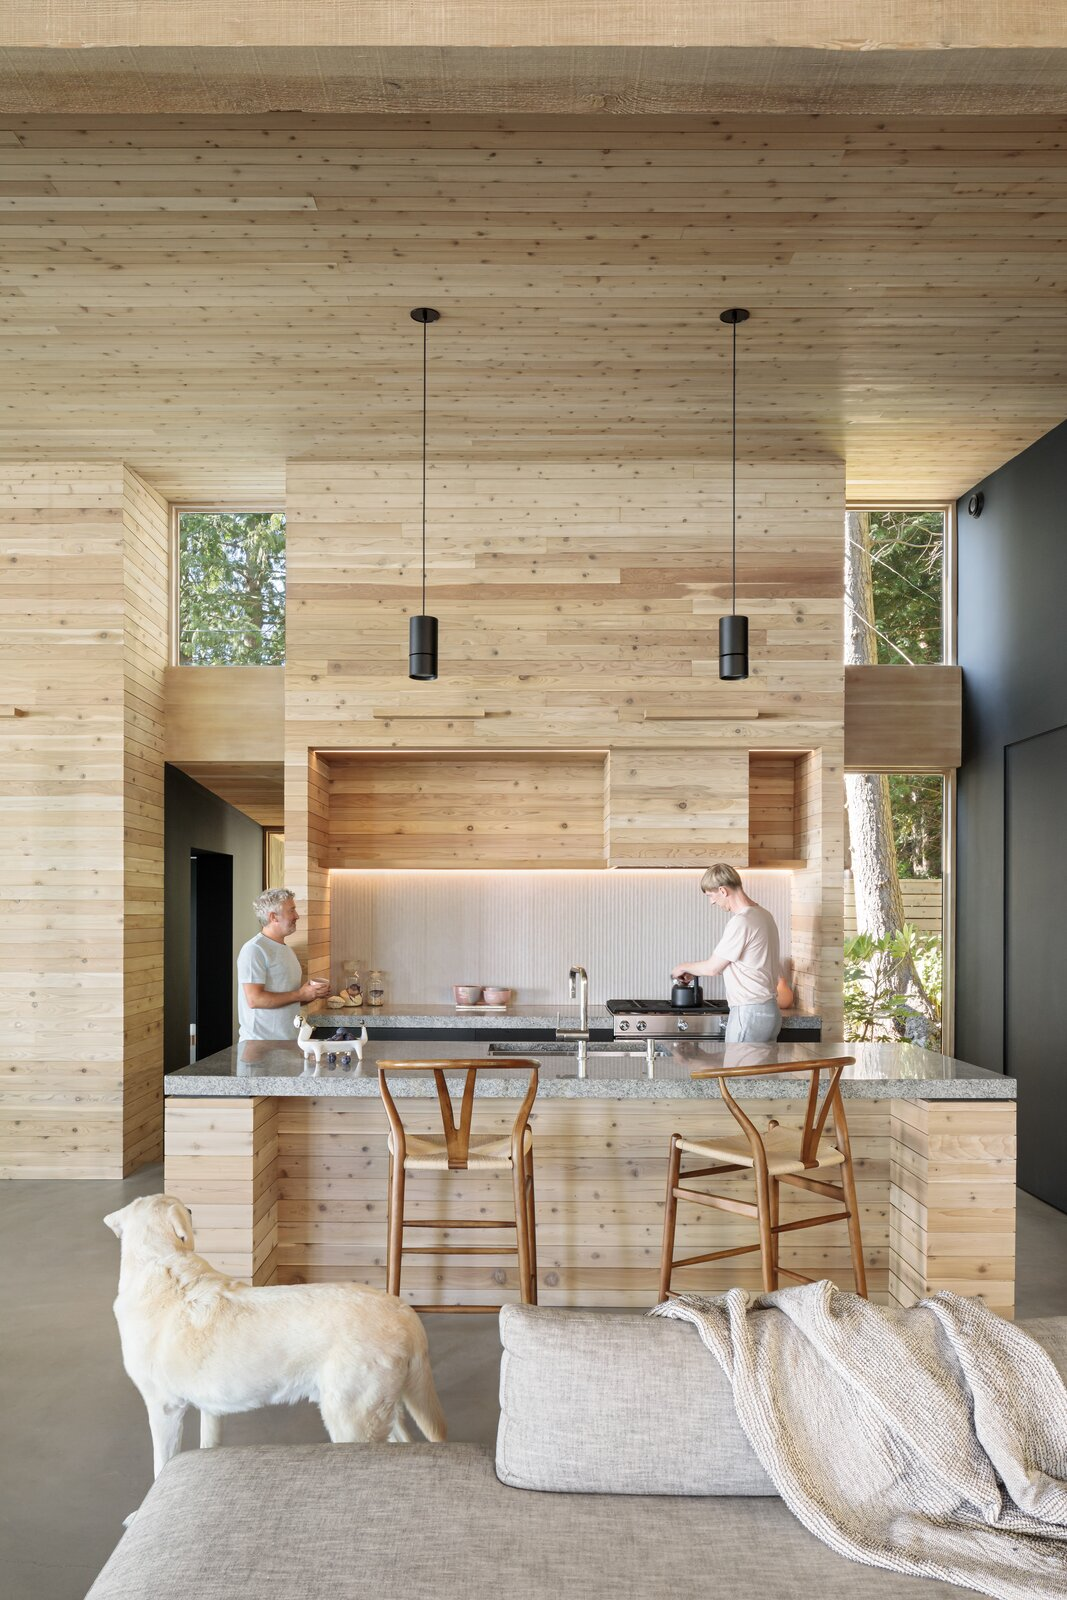 Kitchen, Track Lighting, Metal Cabinet, Granite Counter, Range Hood, Concrete Floor, Range, and Pendant Lighting  Dwell's Favorite Photos from An Angular Black Cabin Rises From the Woods Near Vancouver